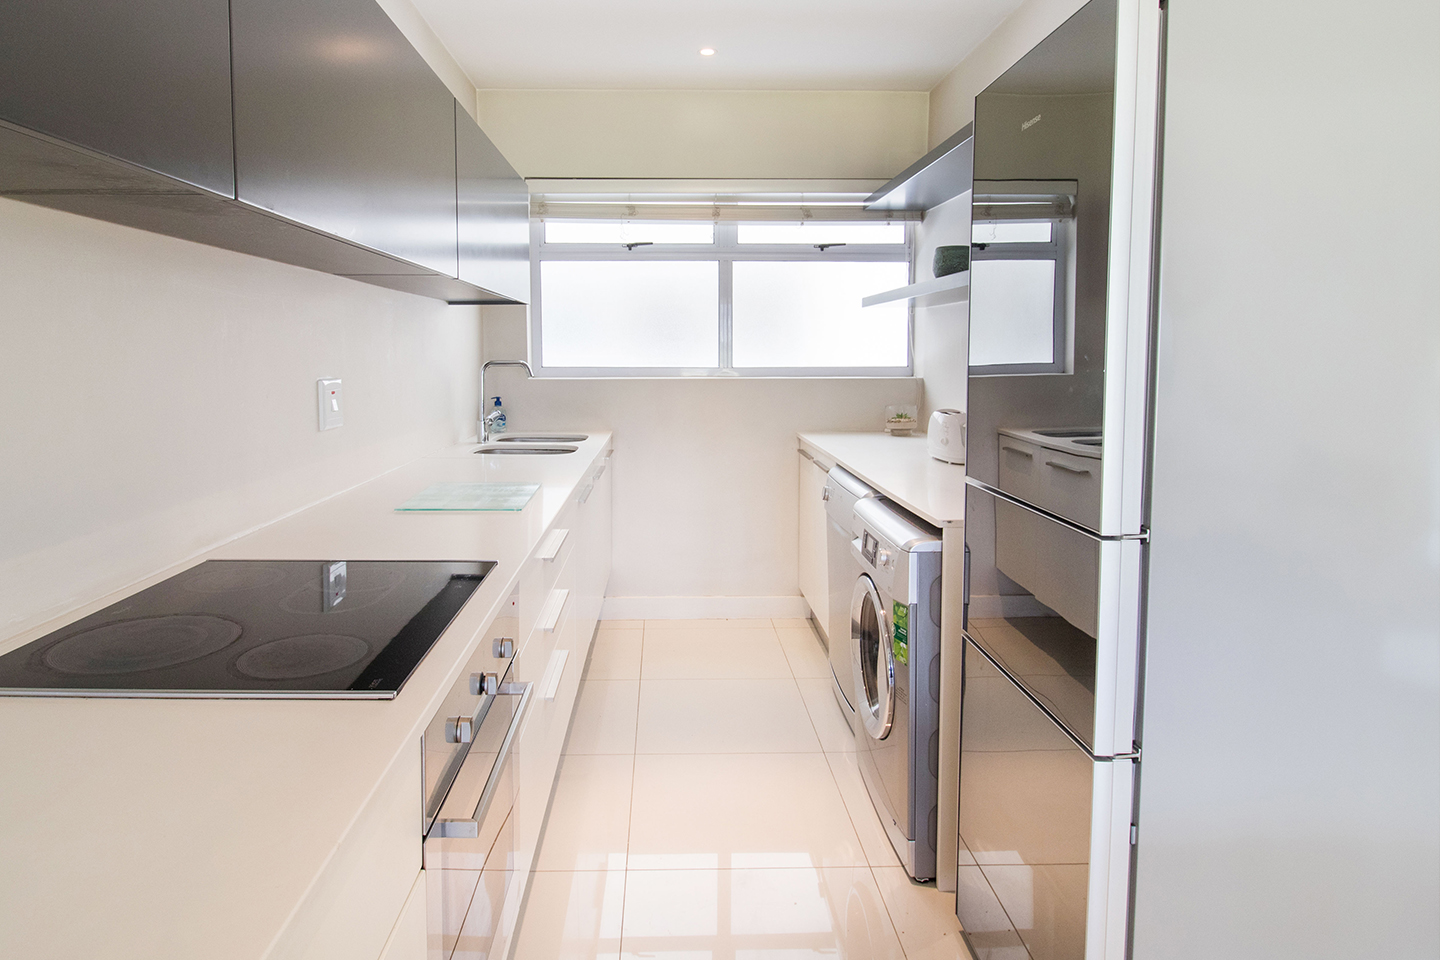 2 bed kitchen at Mouille Point Village - Citybase Apartments